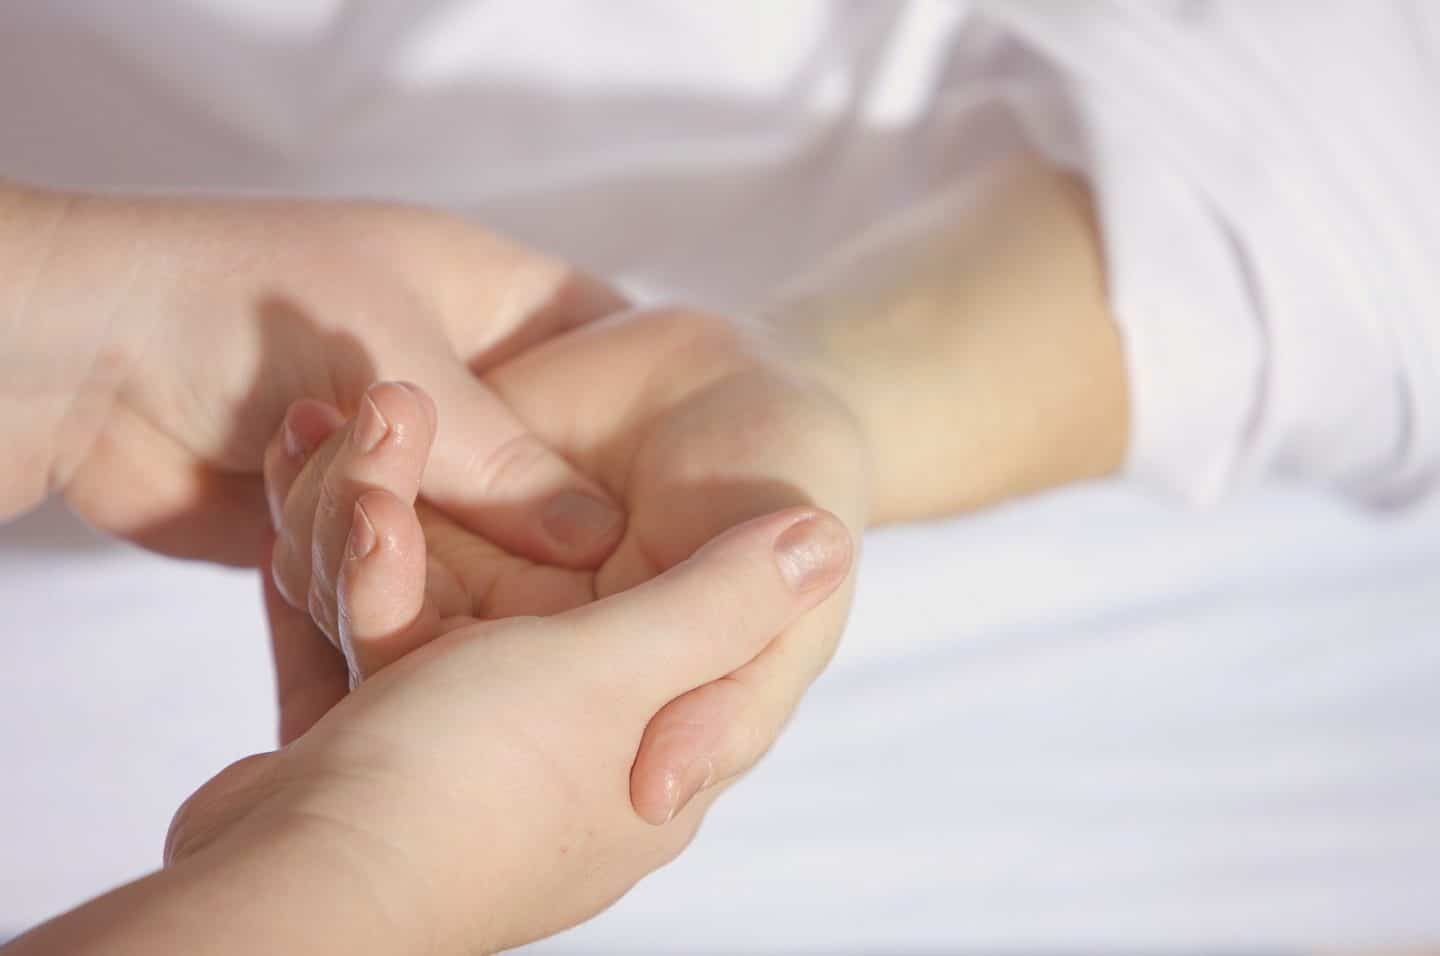 Have You Suffered From Wrist Pain?